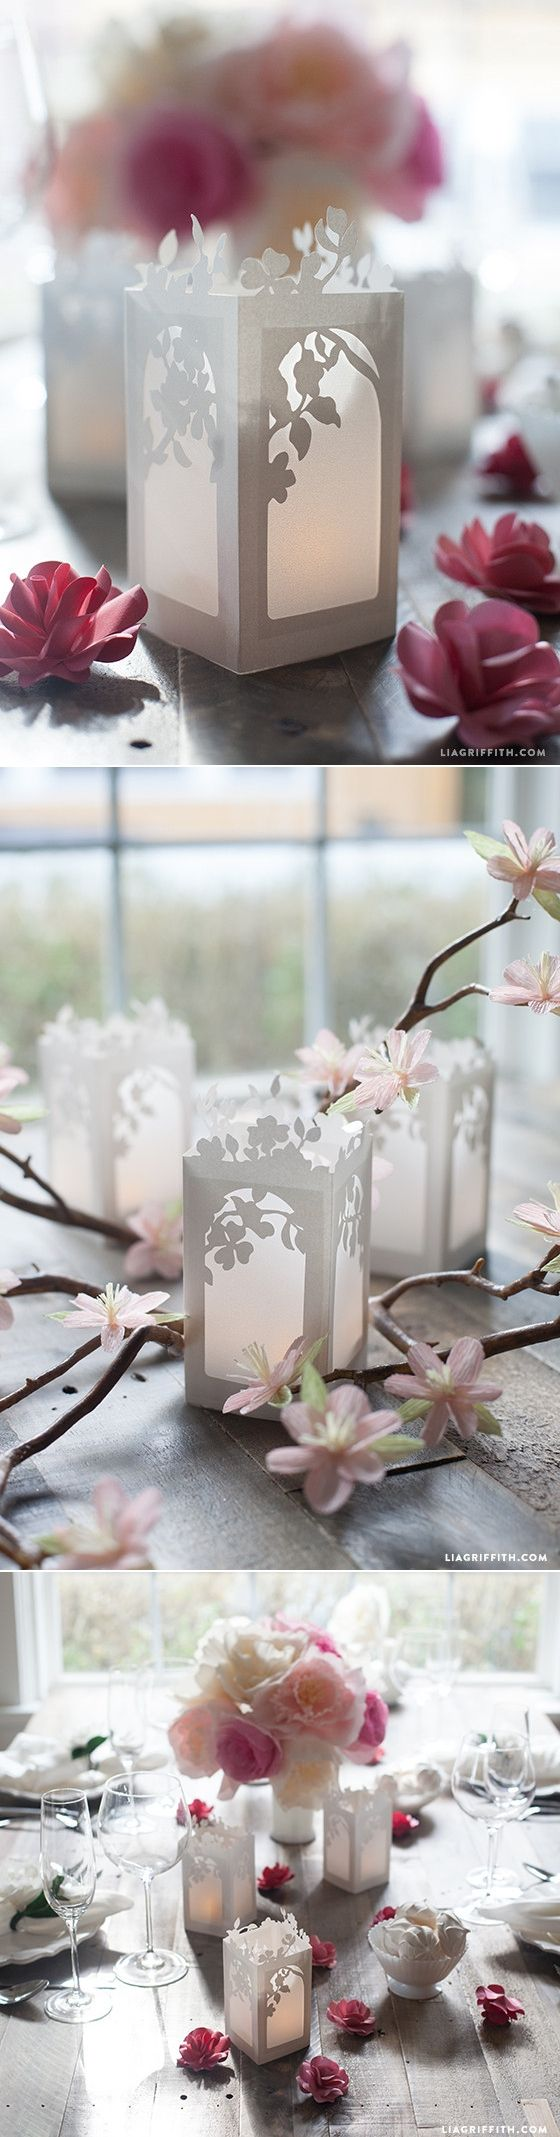 Spring in Bloom Paper Lanterns - Tutorial and template at www.LiaGriffith.com #wedding #diywedding #paperlanterns: